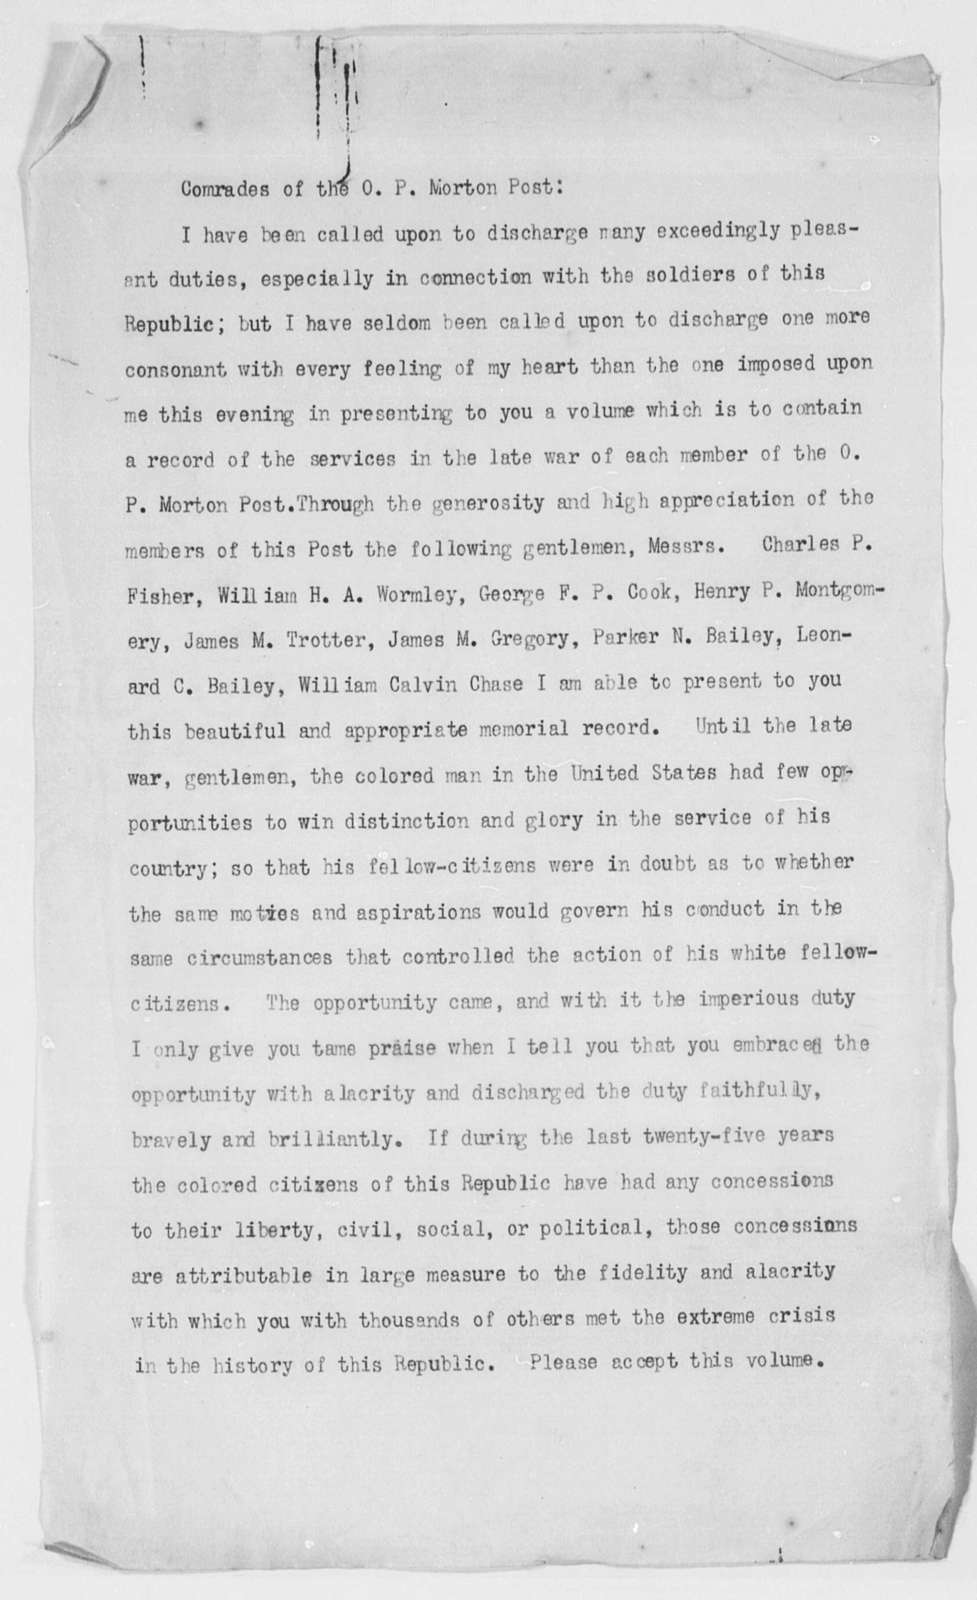 [The Negro] Speech at the Oliver P. Morton Post of the G. A. R.